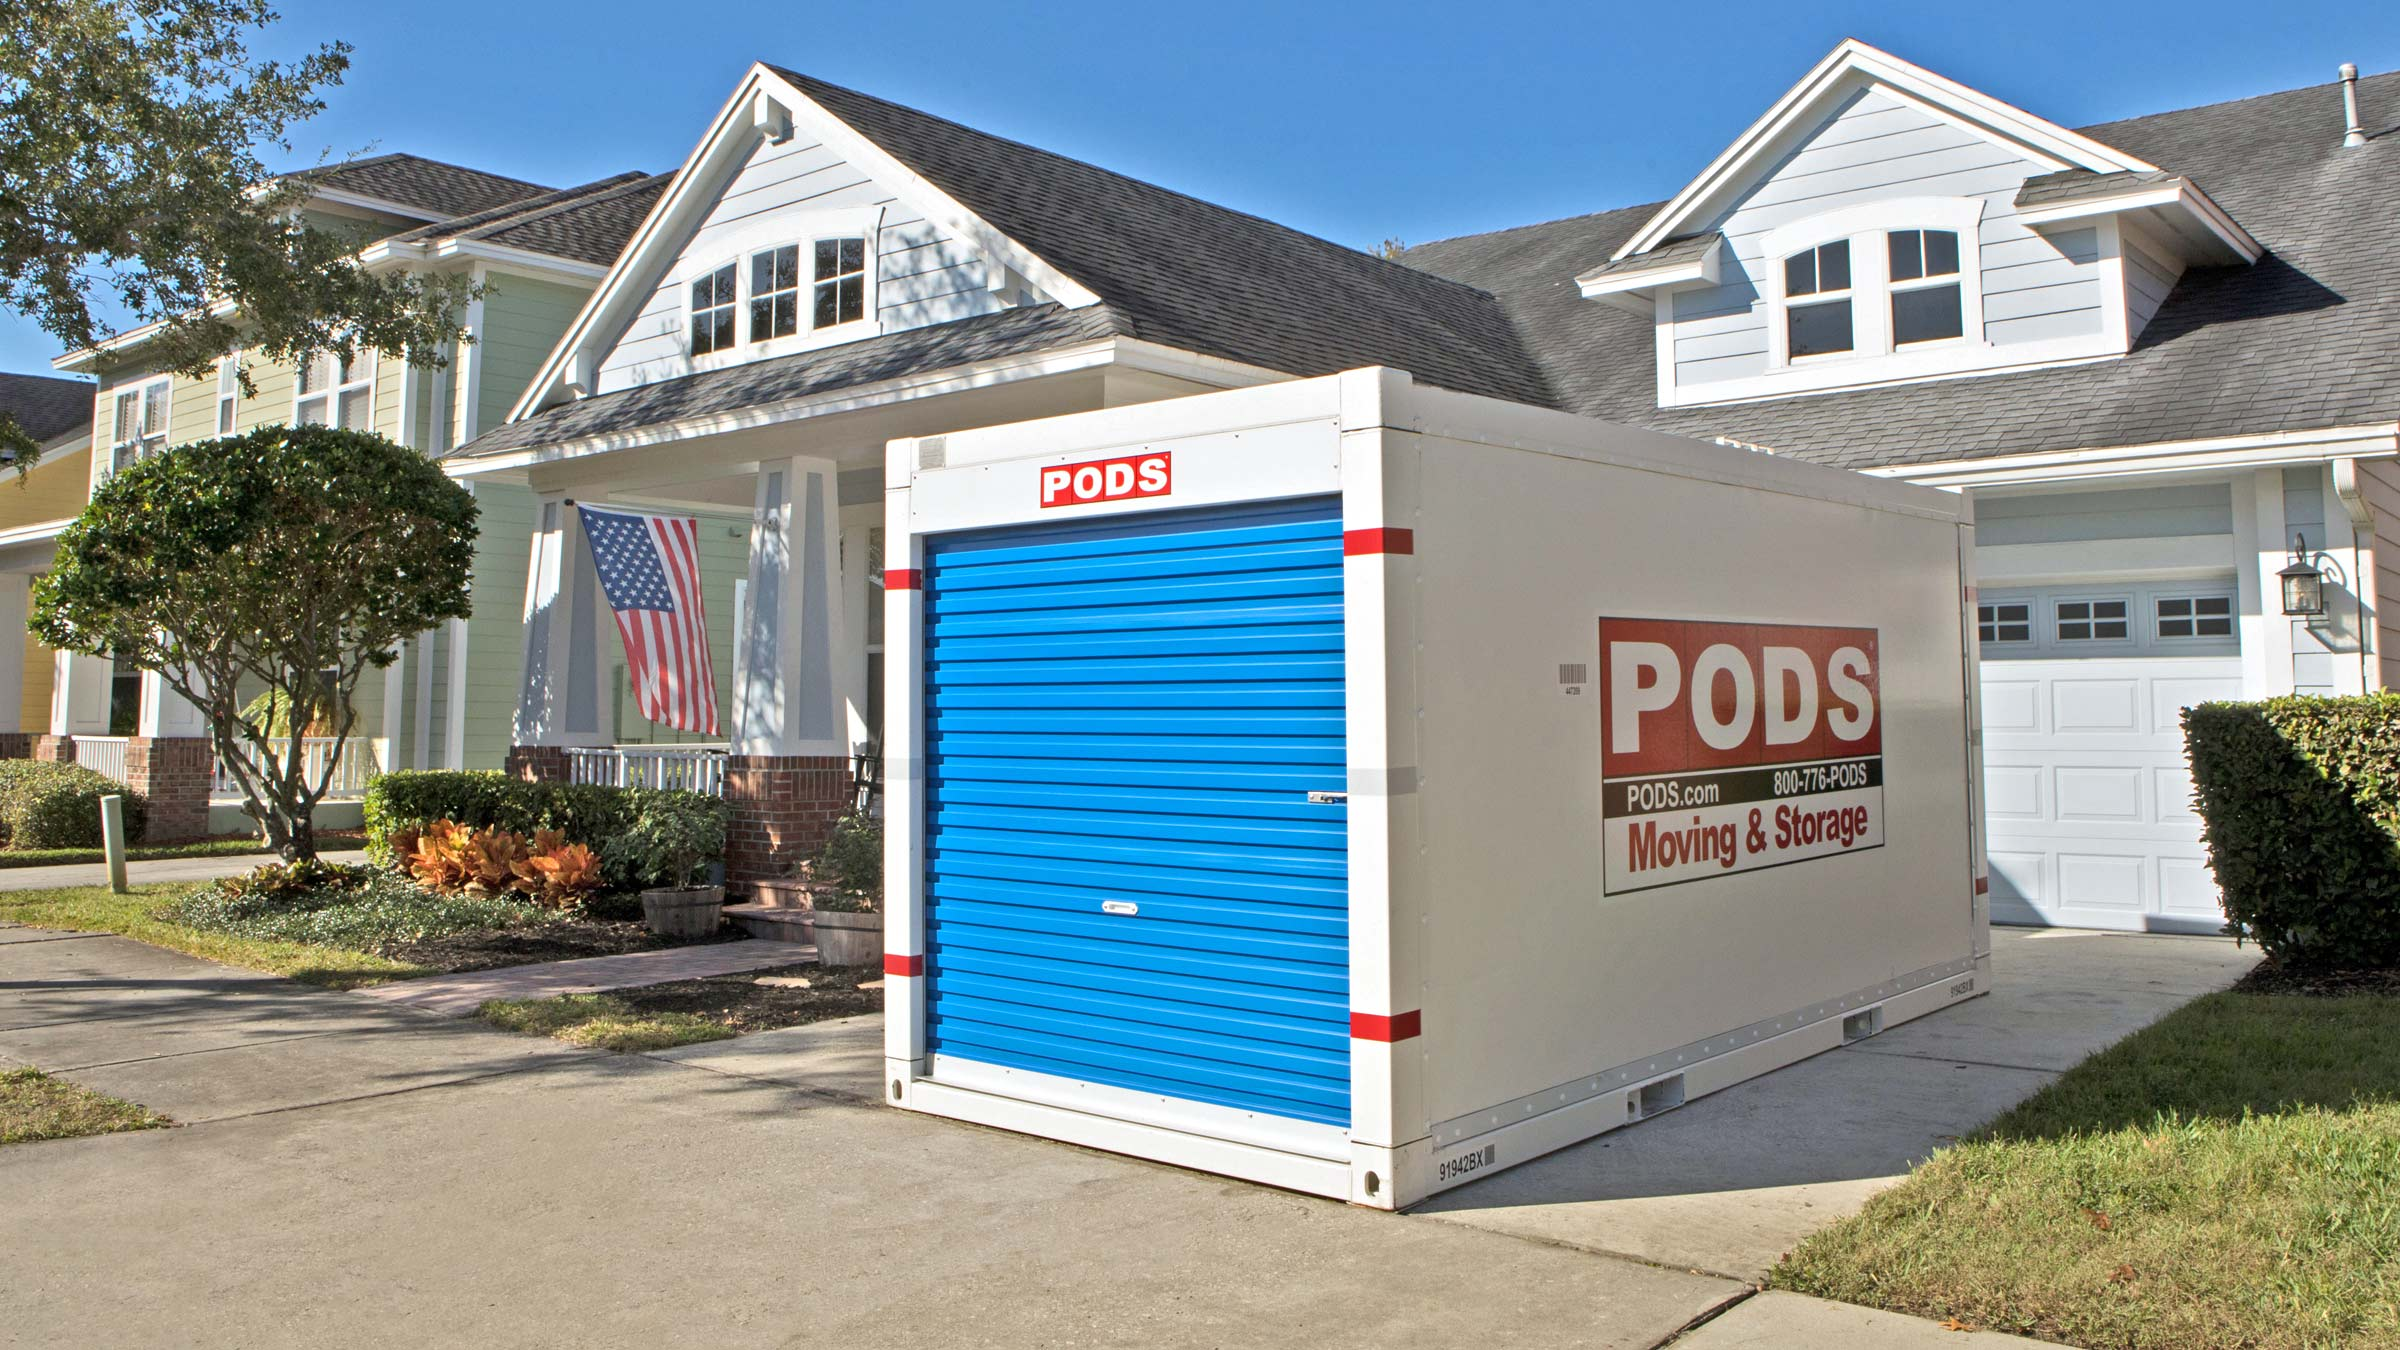 PODS container in the driveway in front of a house